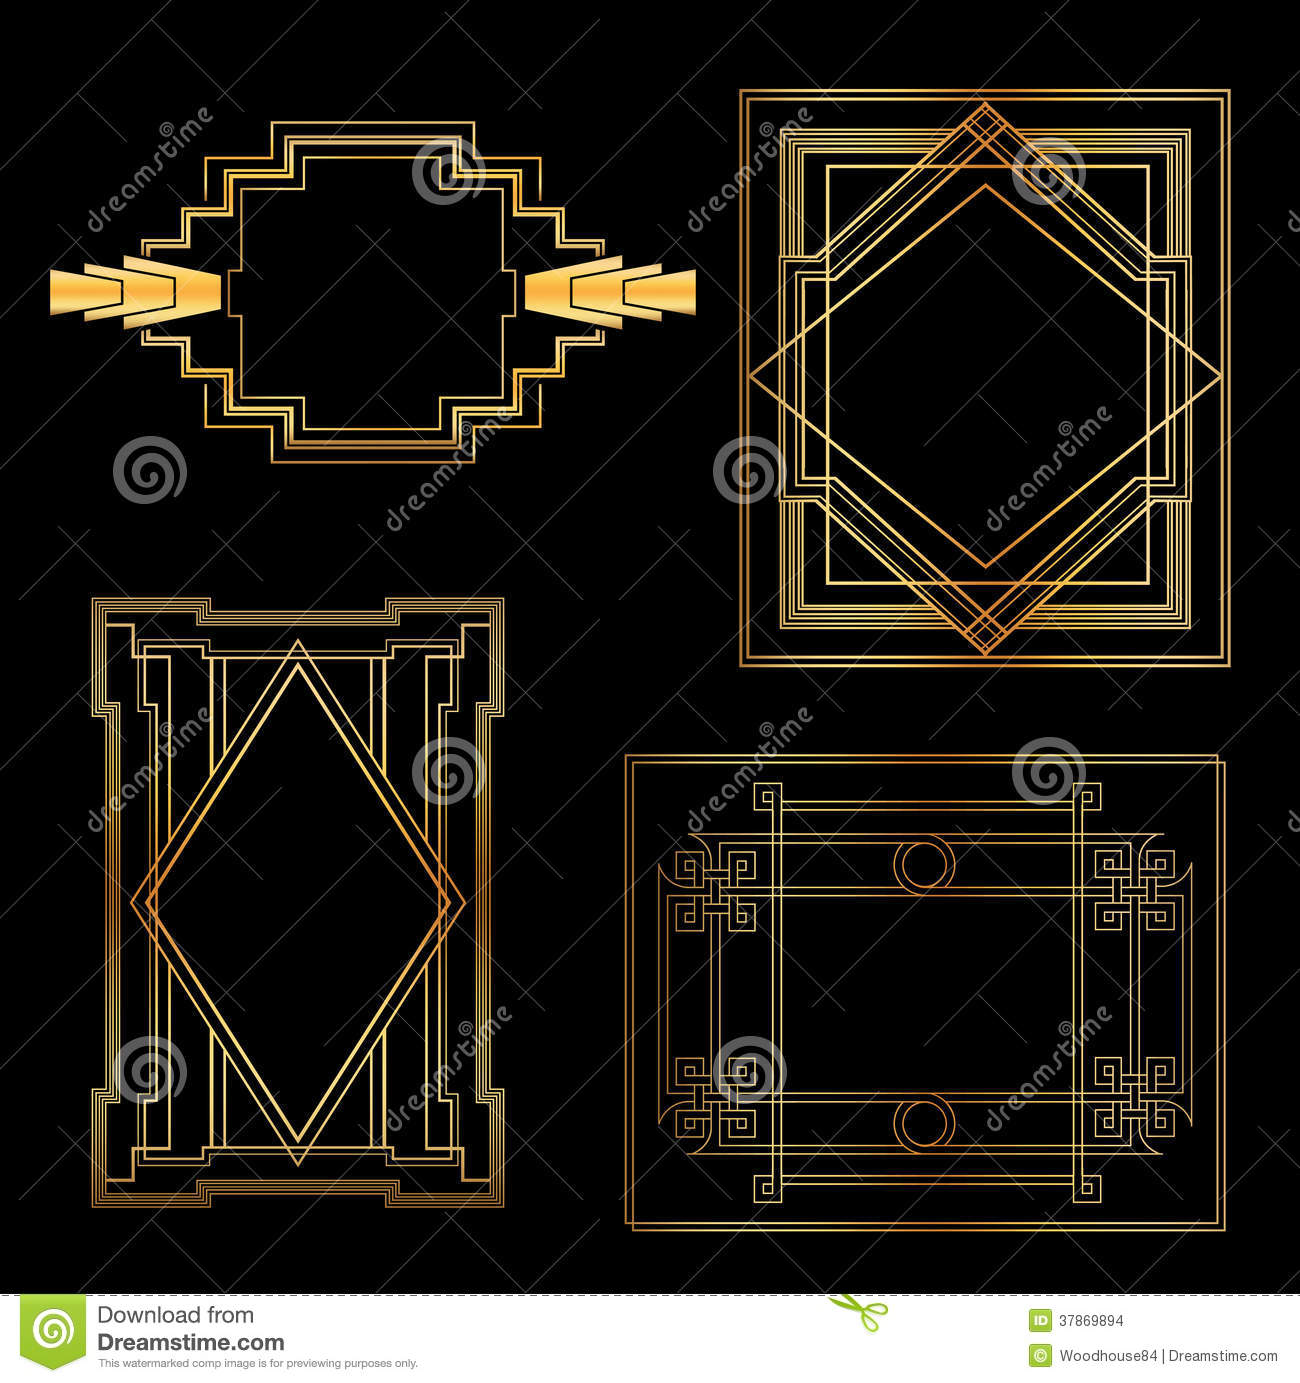 art deco vintage frames stock vector image of banner. Black Bedroom Furniture Sets. Home Design Ideas